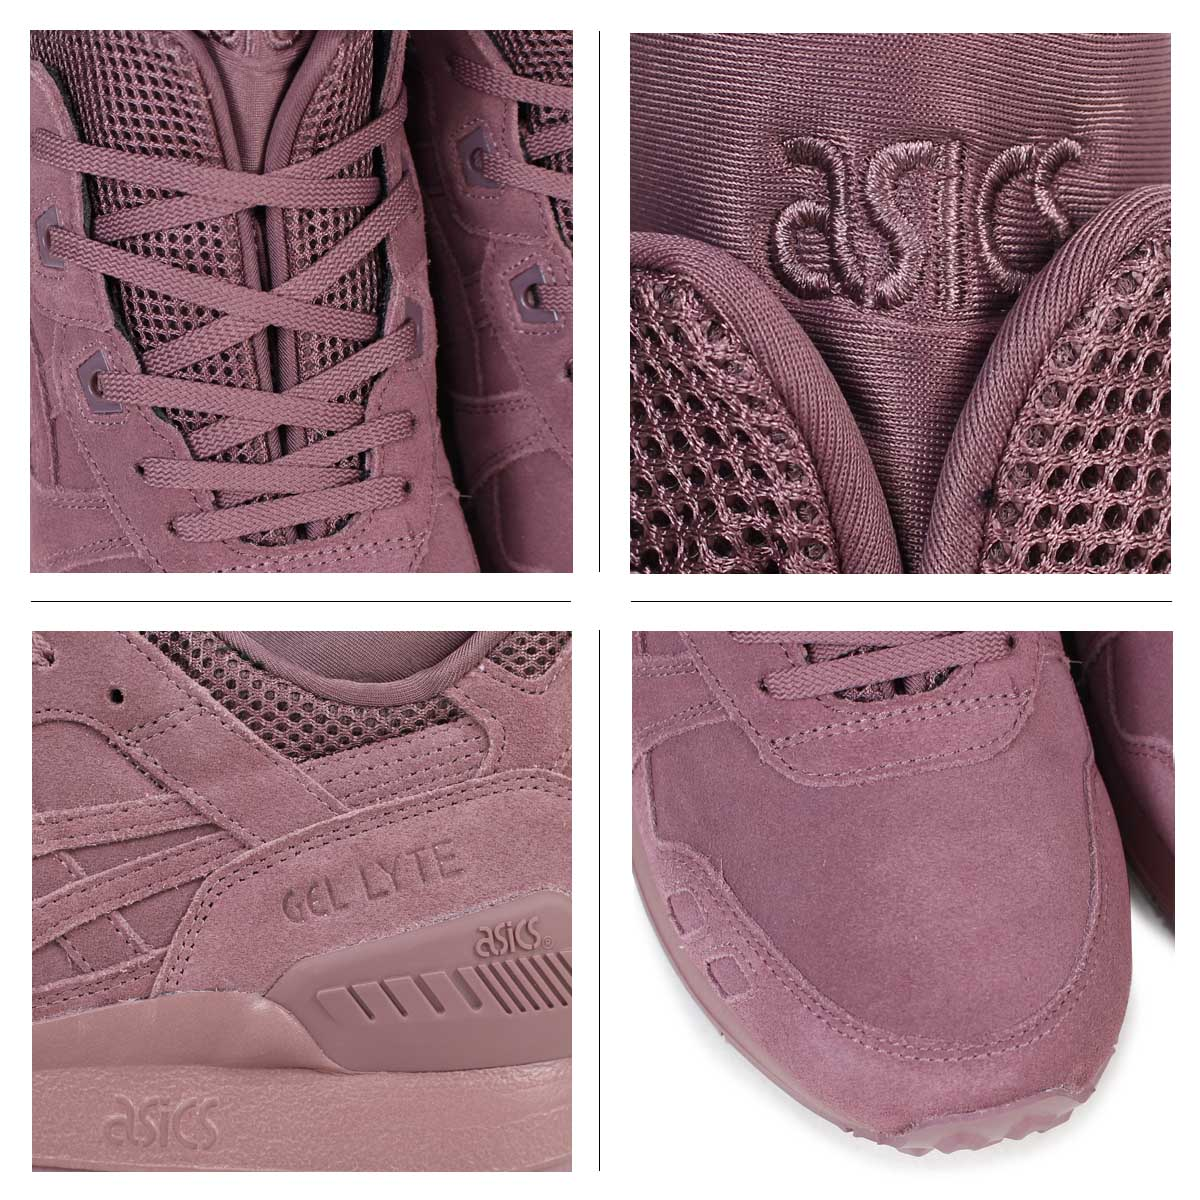 asics Tiger GEL-LYTE MT ASICS tiger gel light sneakers H8J1L-2626 men  purple [1/26 Shinnyu load] [181]